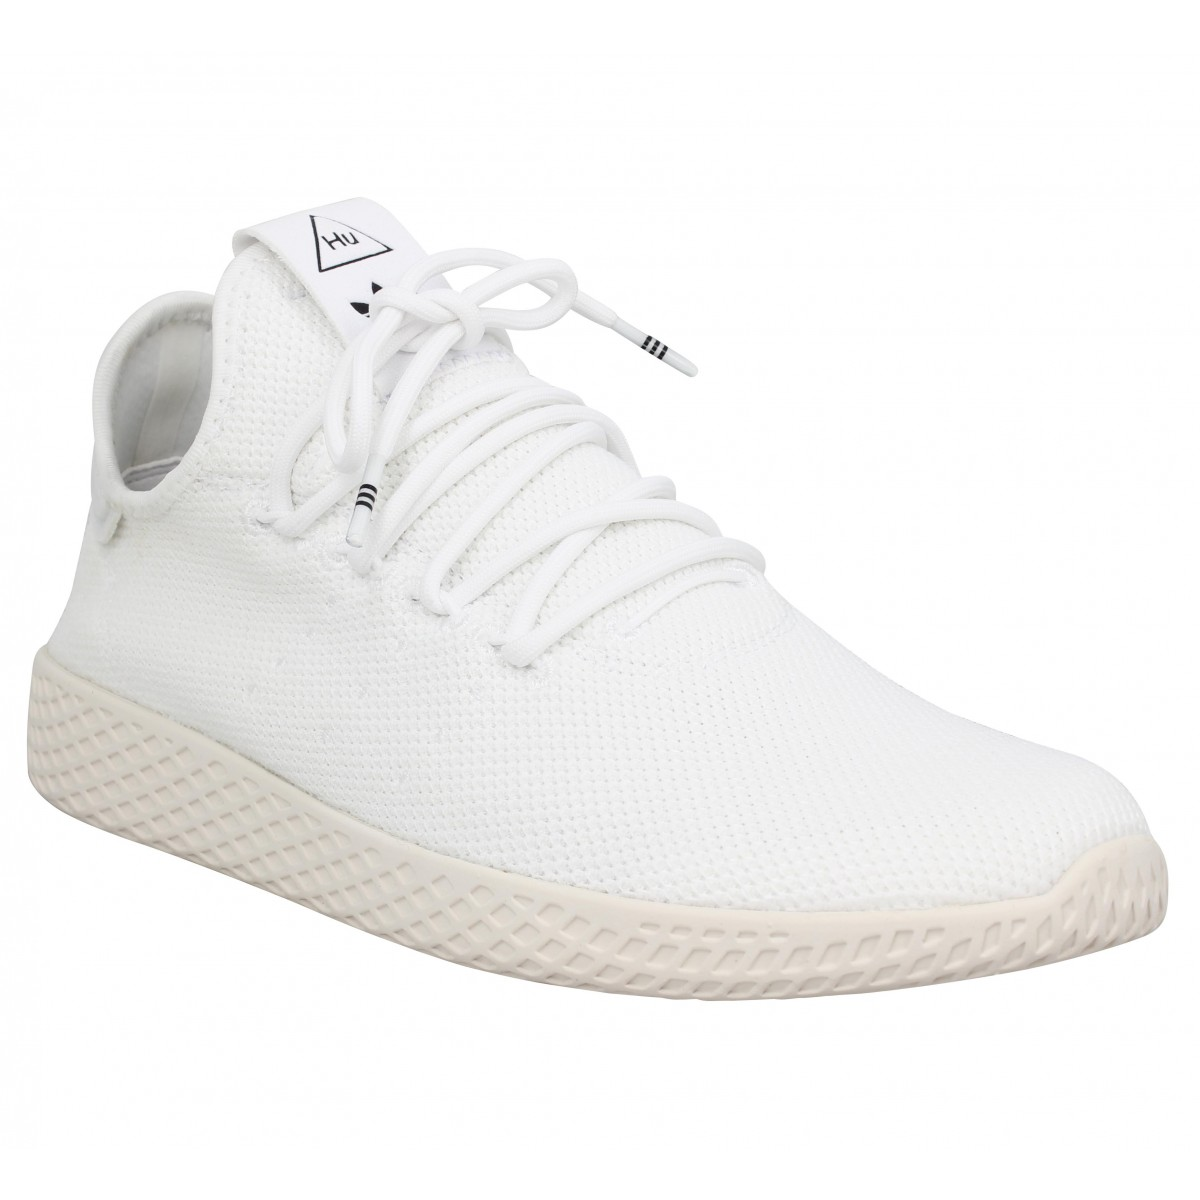 ADIDAS X PHARRELL WILLIAMS PW Tennis mesh Homme Blanc